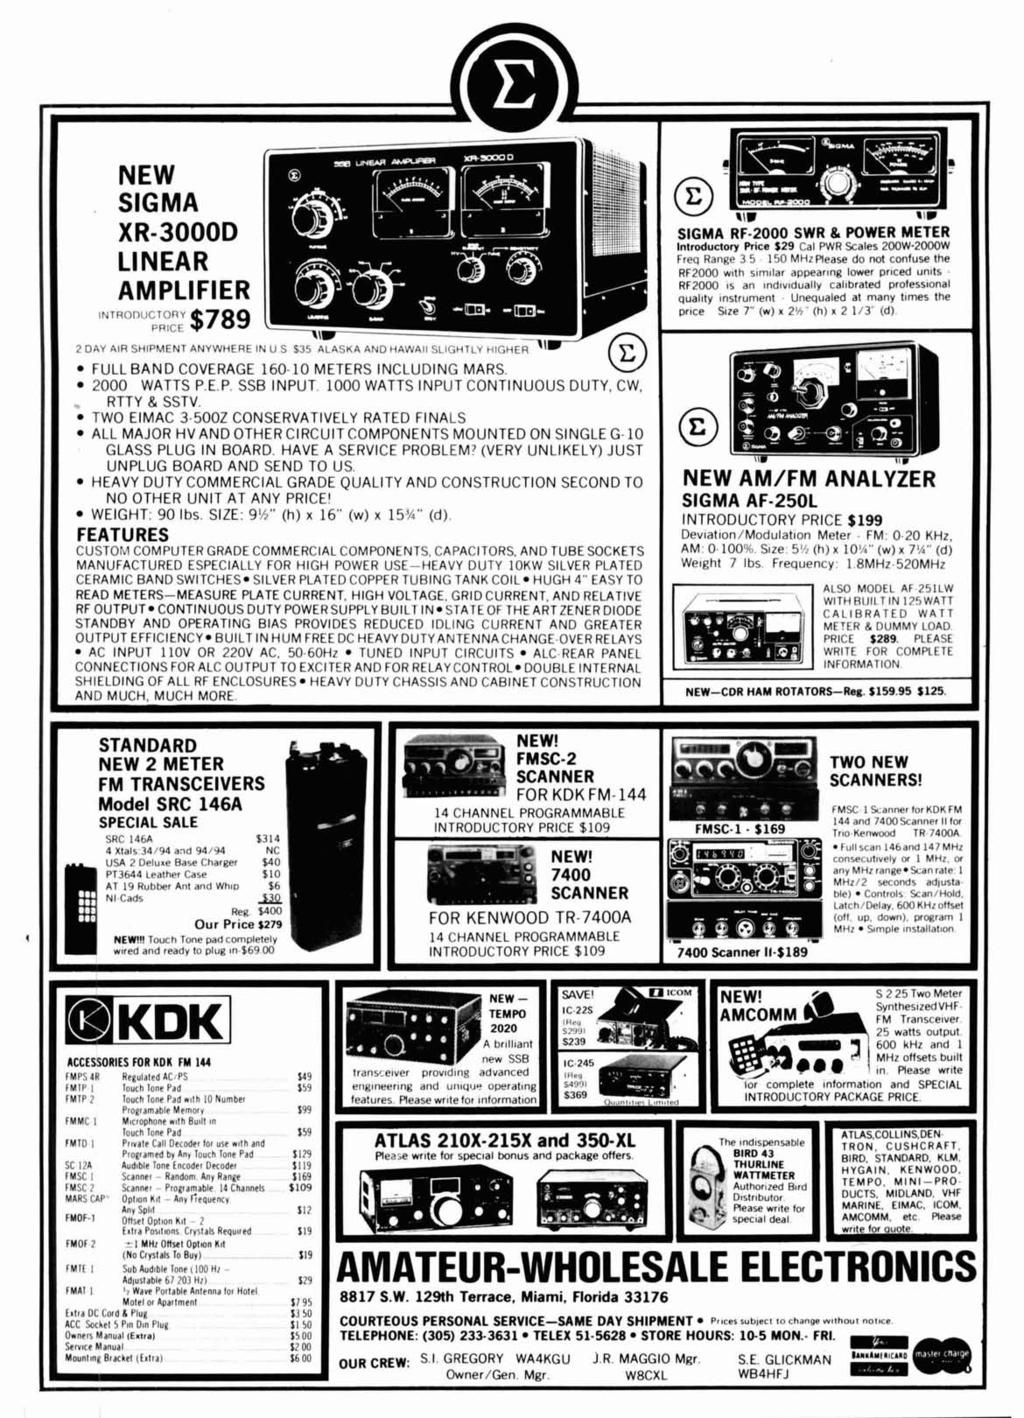 Radio September 1977 Frequency Synthesizer 44 Pi Network Design Meters Scanners Circuit Breaker Finders Sperry Finder 3 5 110 Mtiiplease Do Not Confuse The Rf2000 W